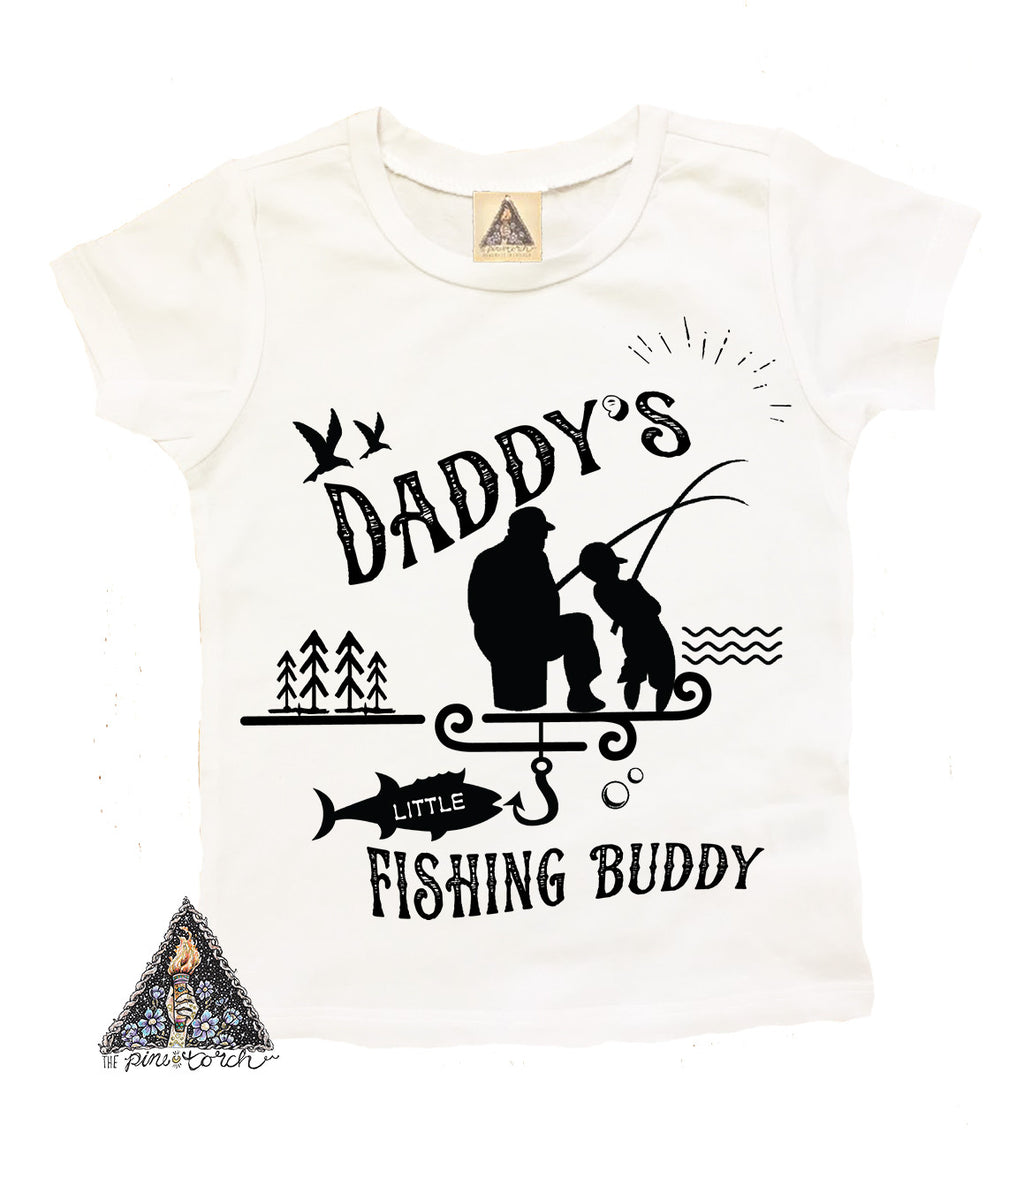 « DADDY'S FISHING BUDDY » KID'S TEE